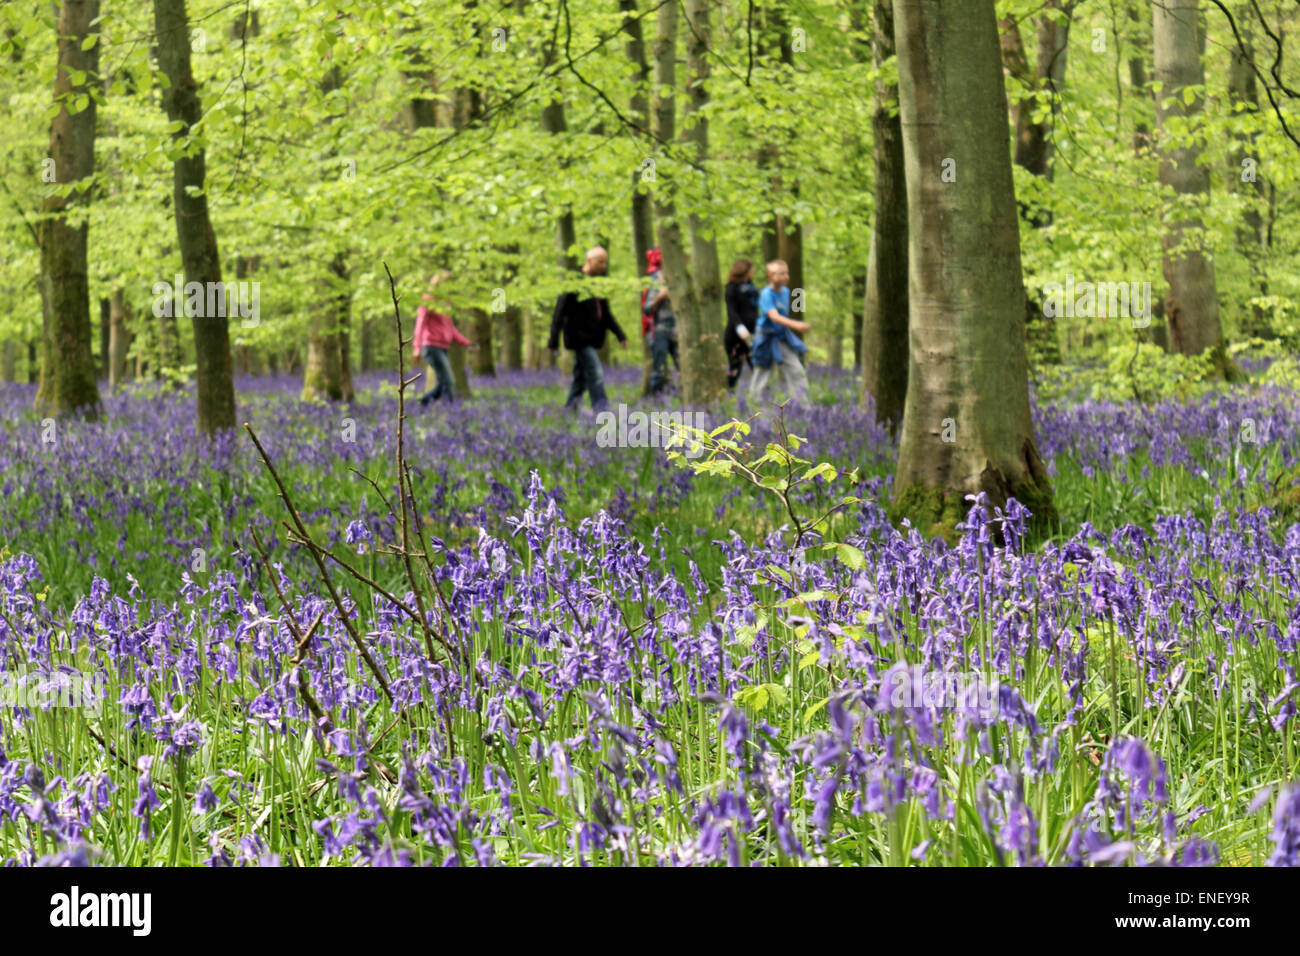 Ashridge Estate, Hertfordshire, England, UK. 4th May 2015. A family enjoy the vibrant colour of bluebells and beech - Stock Image